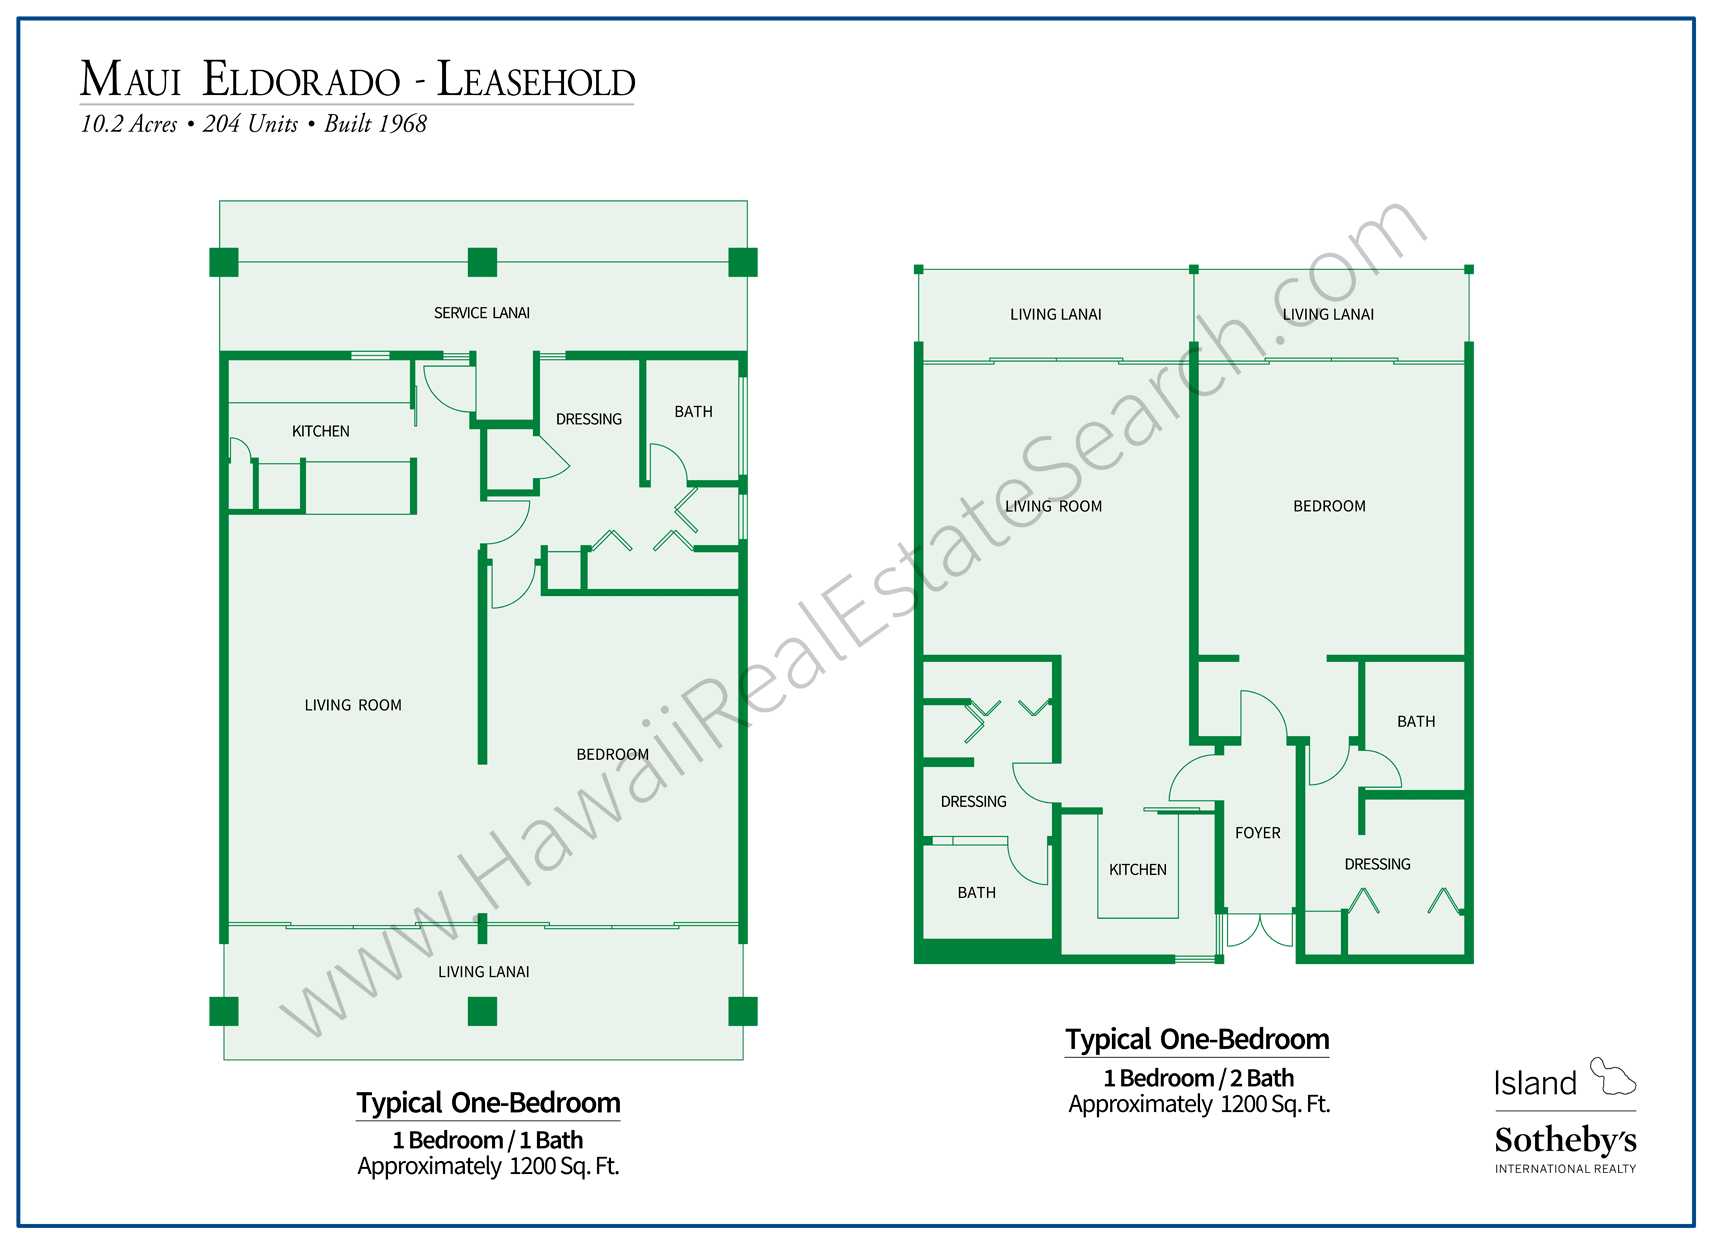 Maui Eldorado Floor Plans Set 2